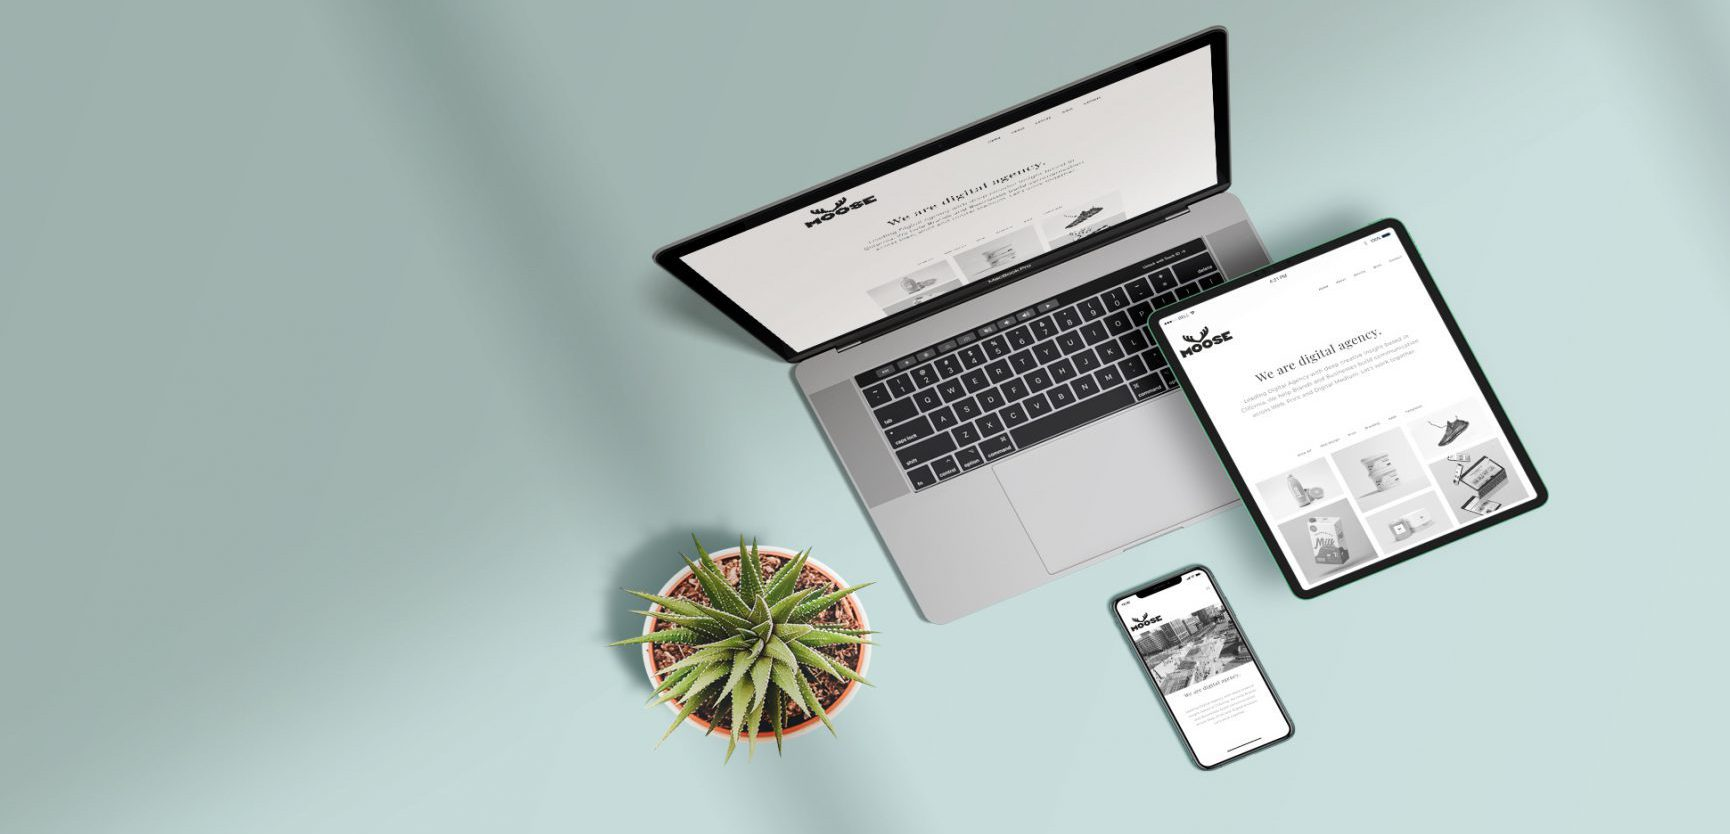 Website package is what can improve these websites, visible on all devices as shown here, laptop, Ipad and Iphone